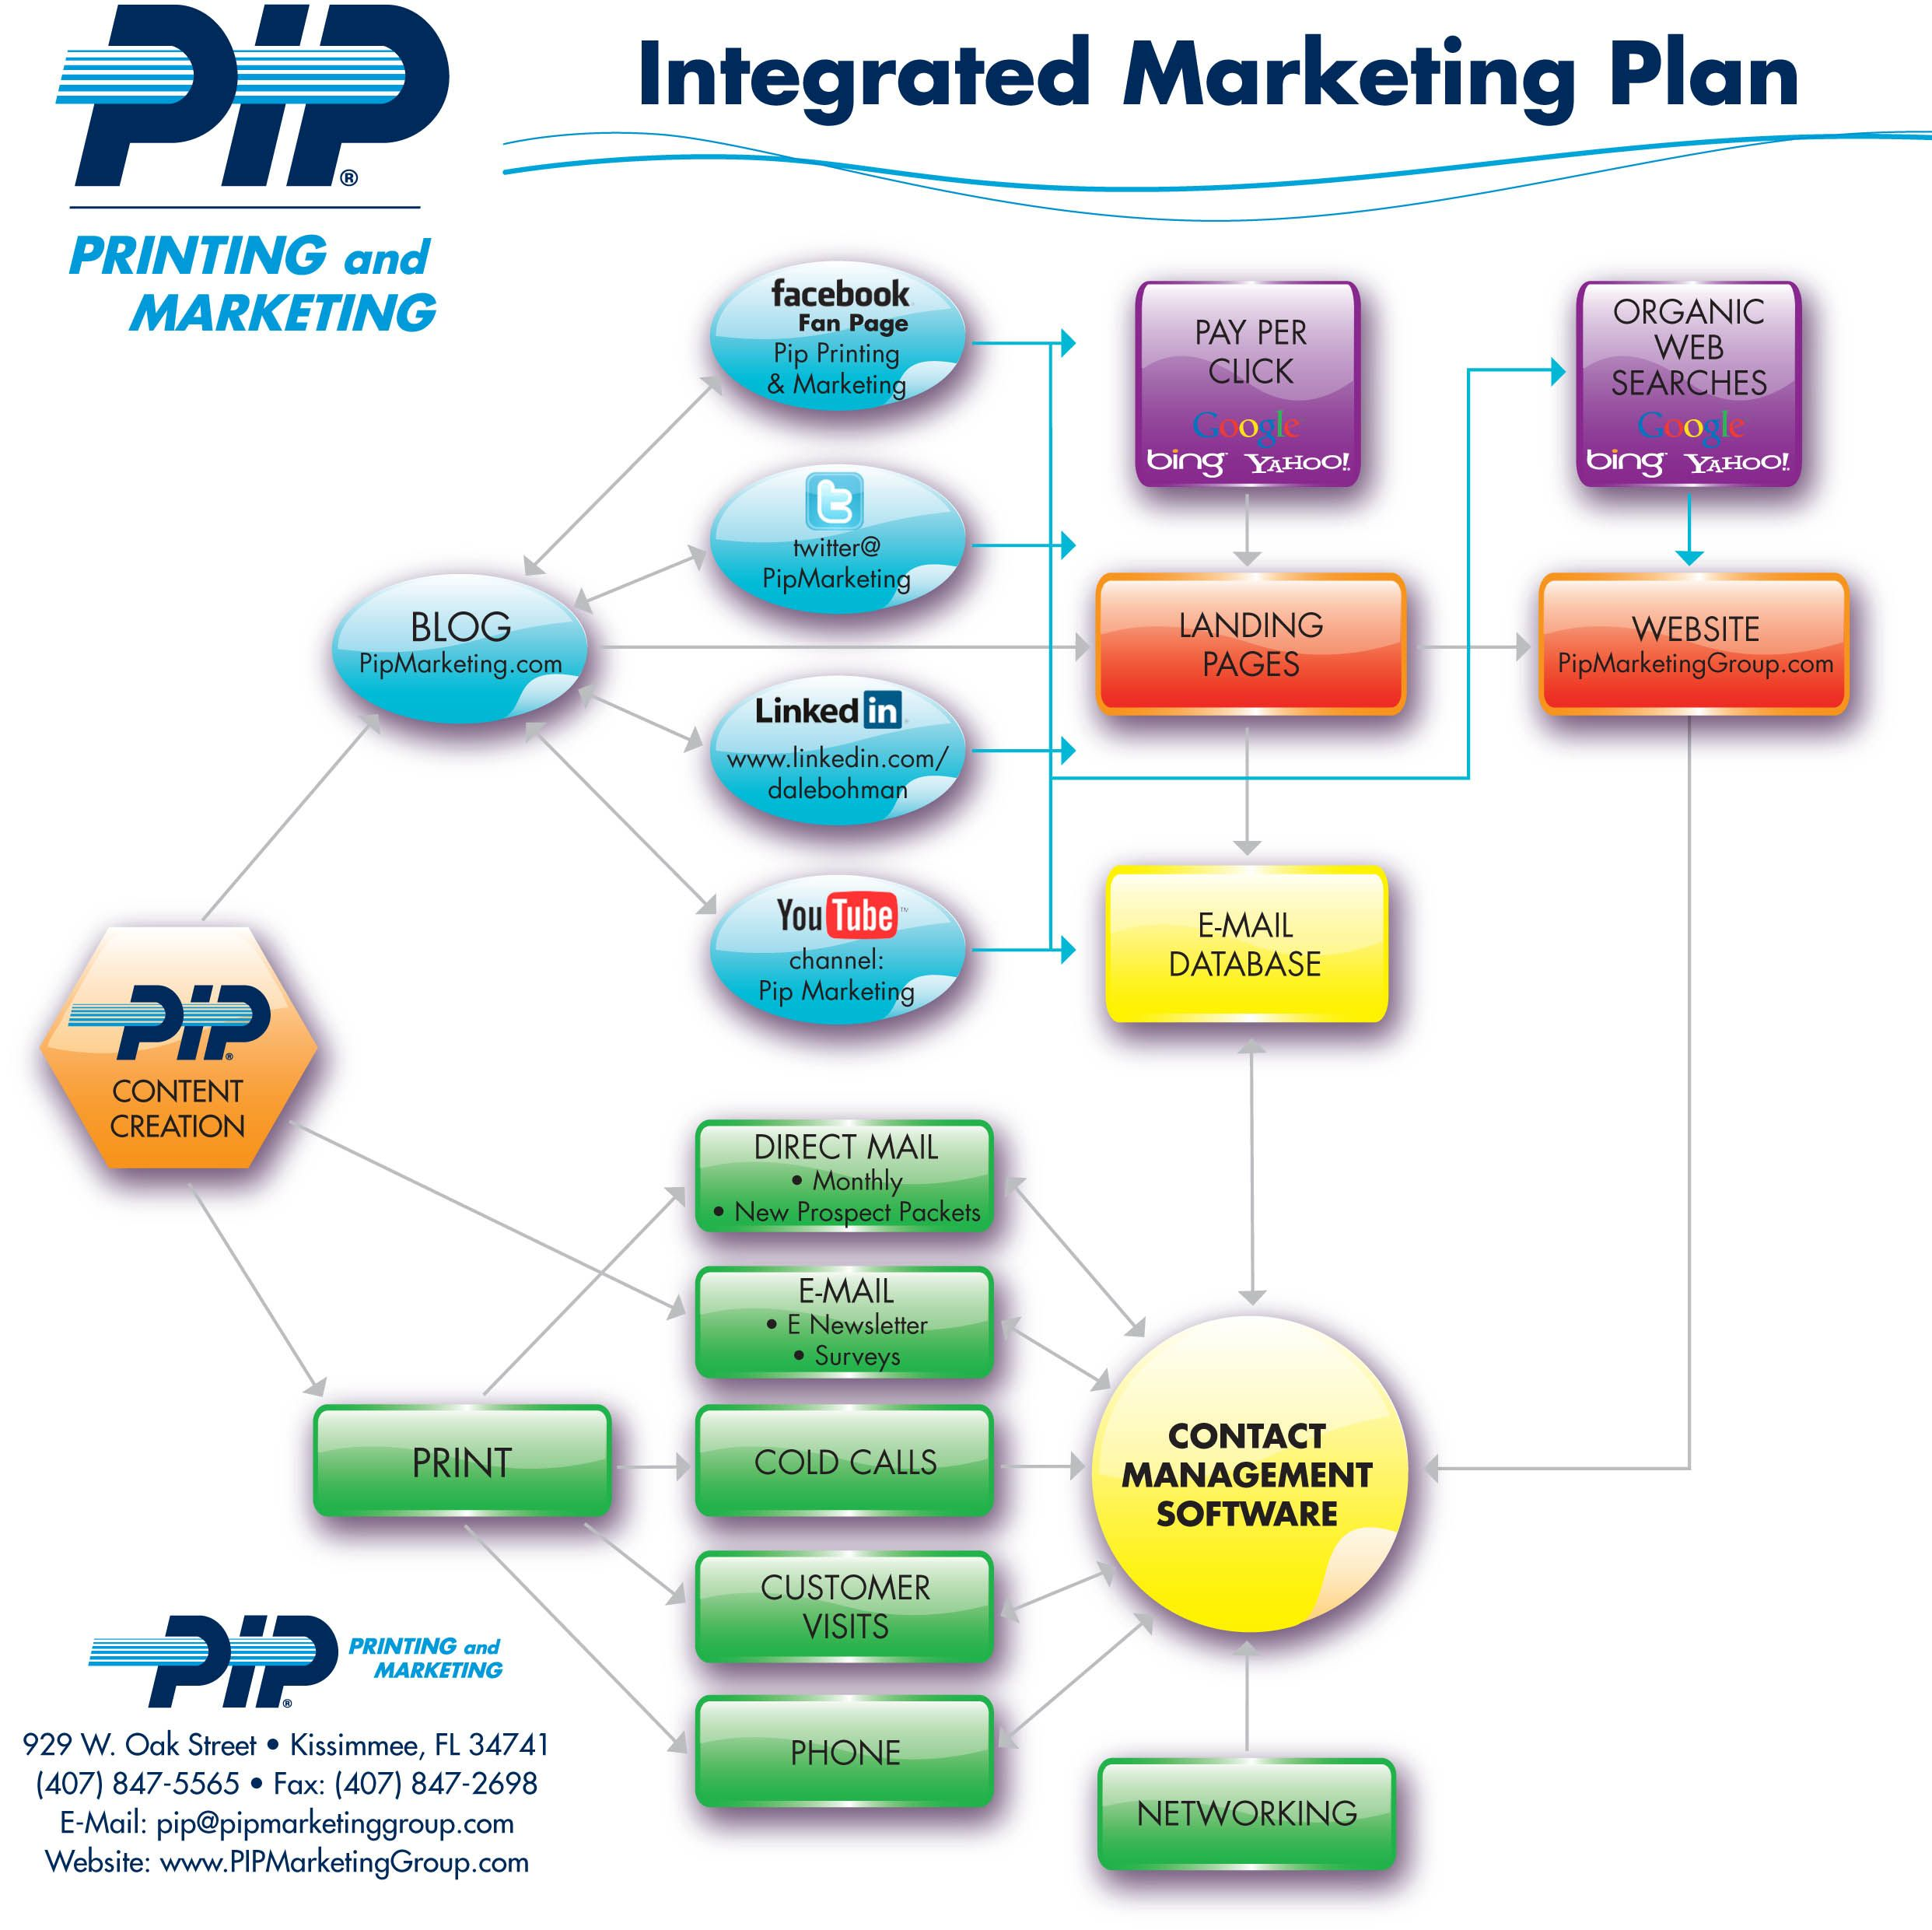 PIP Printing & Marketing's integrated marketing plan